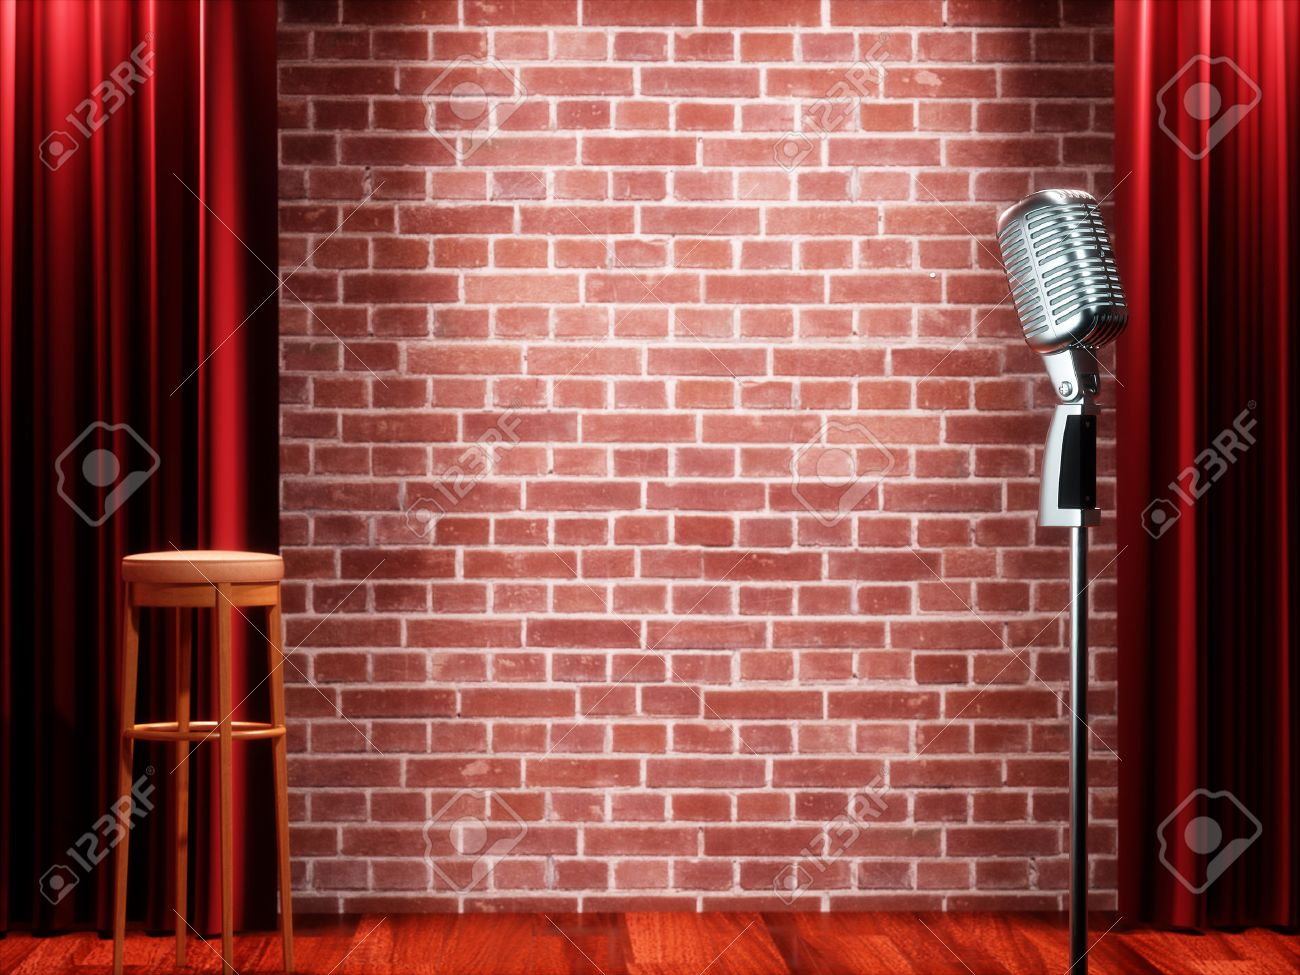 Vintage metal microphone against red curtain on empty theatre stage. 3D illustration Standard-Bild - 66185360